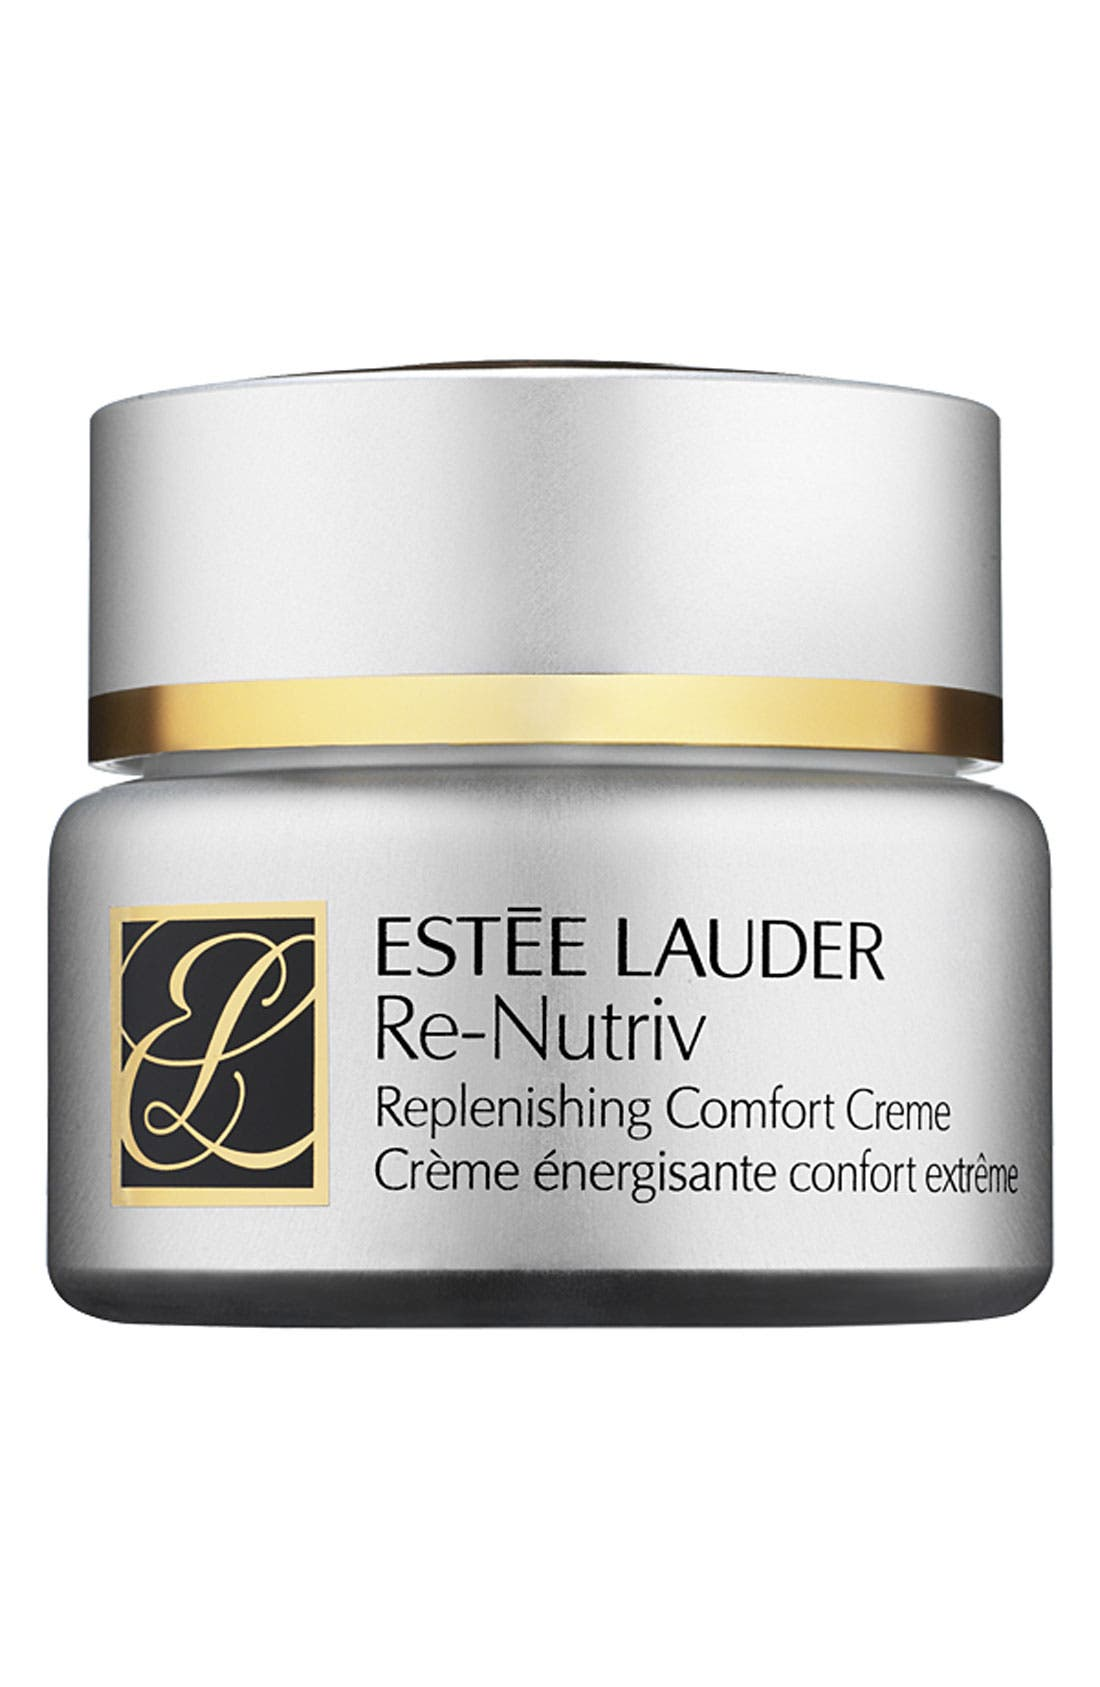 Re-Nutriv Replenishing Comfort Crème,                         Main,                         color, 000